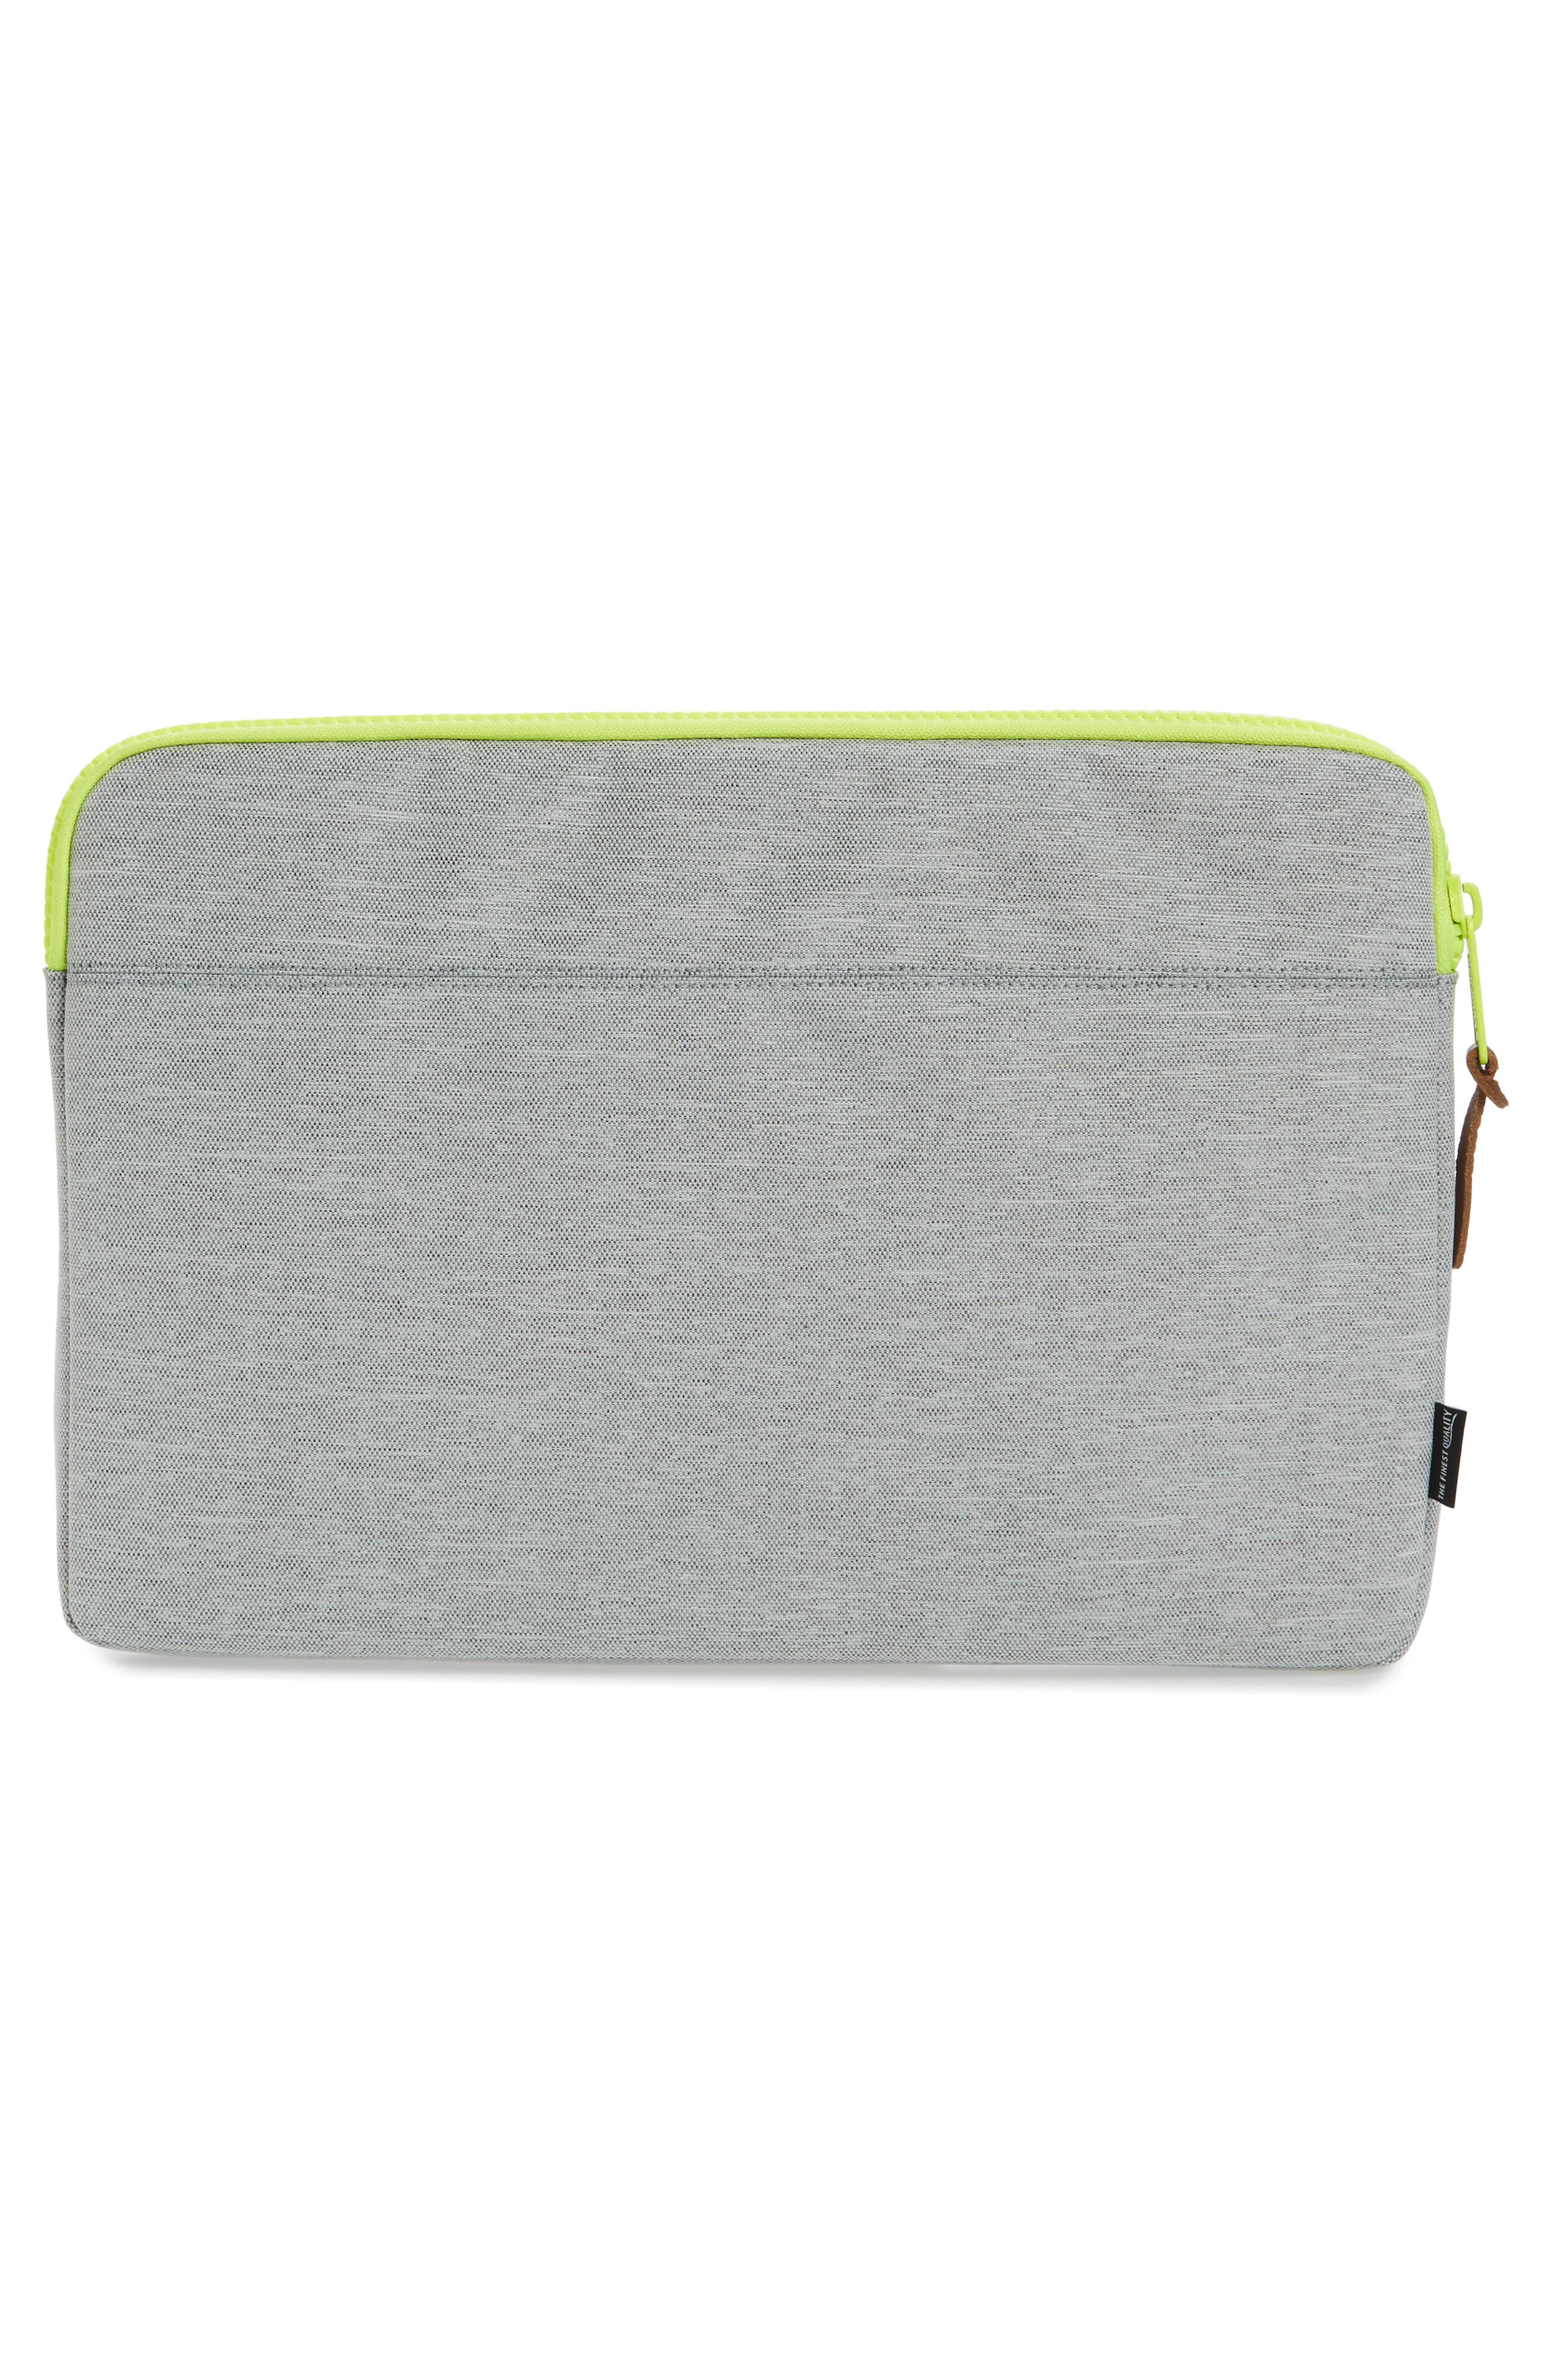 Anchor 13-Inch Laptop Sleeve,                             Alternate thumbnail 4, color,                             020